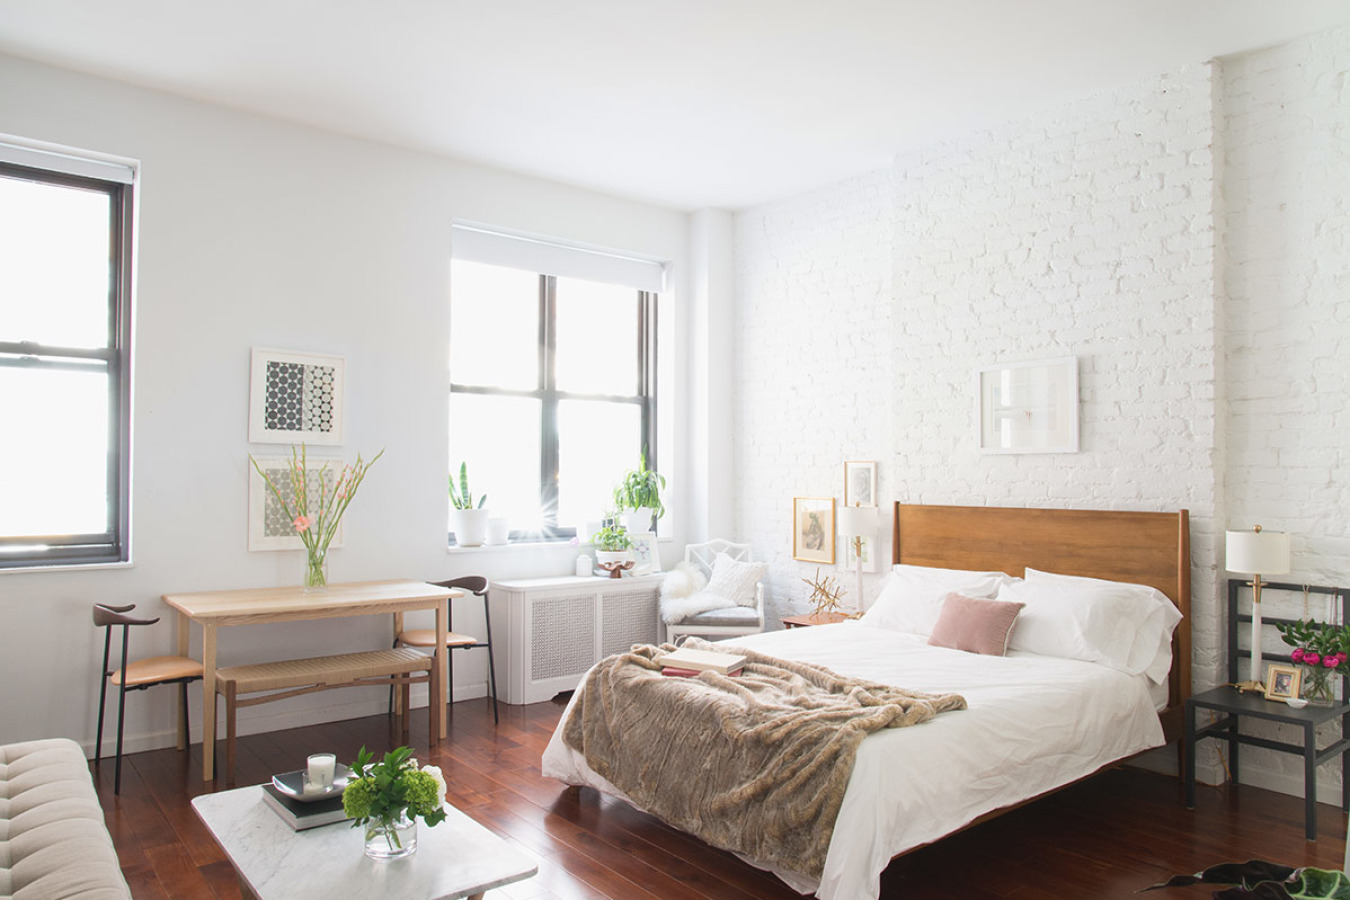 New Dreamy Ikea Bathroom Daily Dream Decor: A Dreamy NYC Studio Apartment With A Perfect Layout